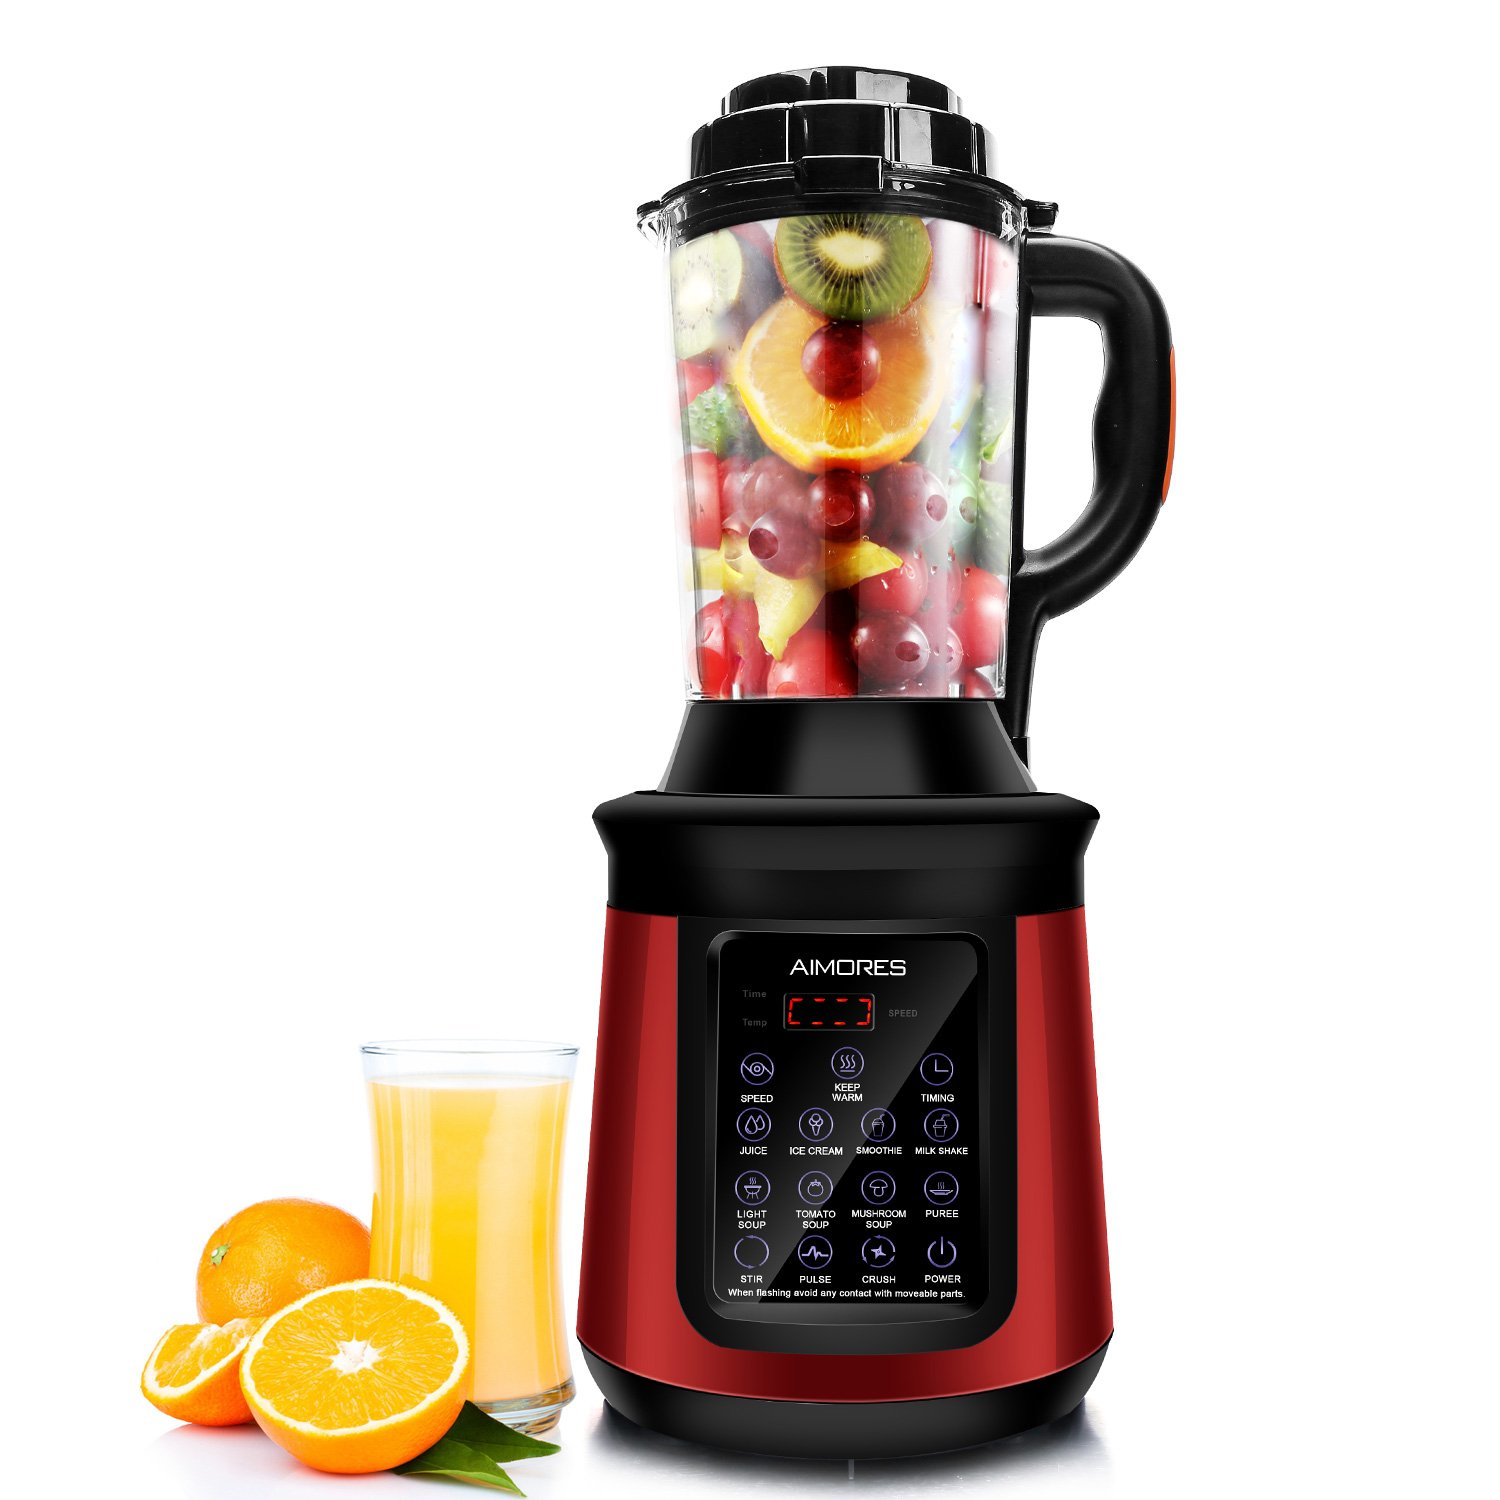 Commercial Blender Aimores with Heating Function - Soup Maker - 8 Pre-programmed - 62oz. Glass Pitcher with Spill-proof Design - LED Touch Screen Control - ETL/FDA Certified (Red)